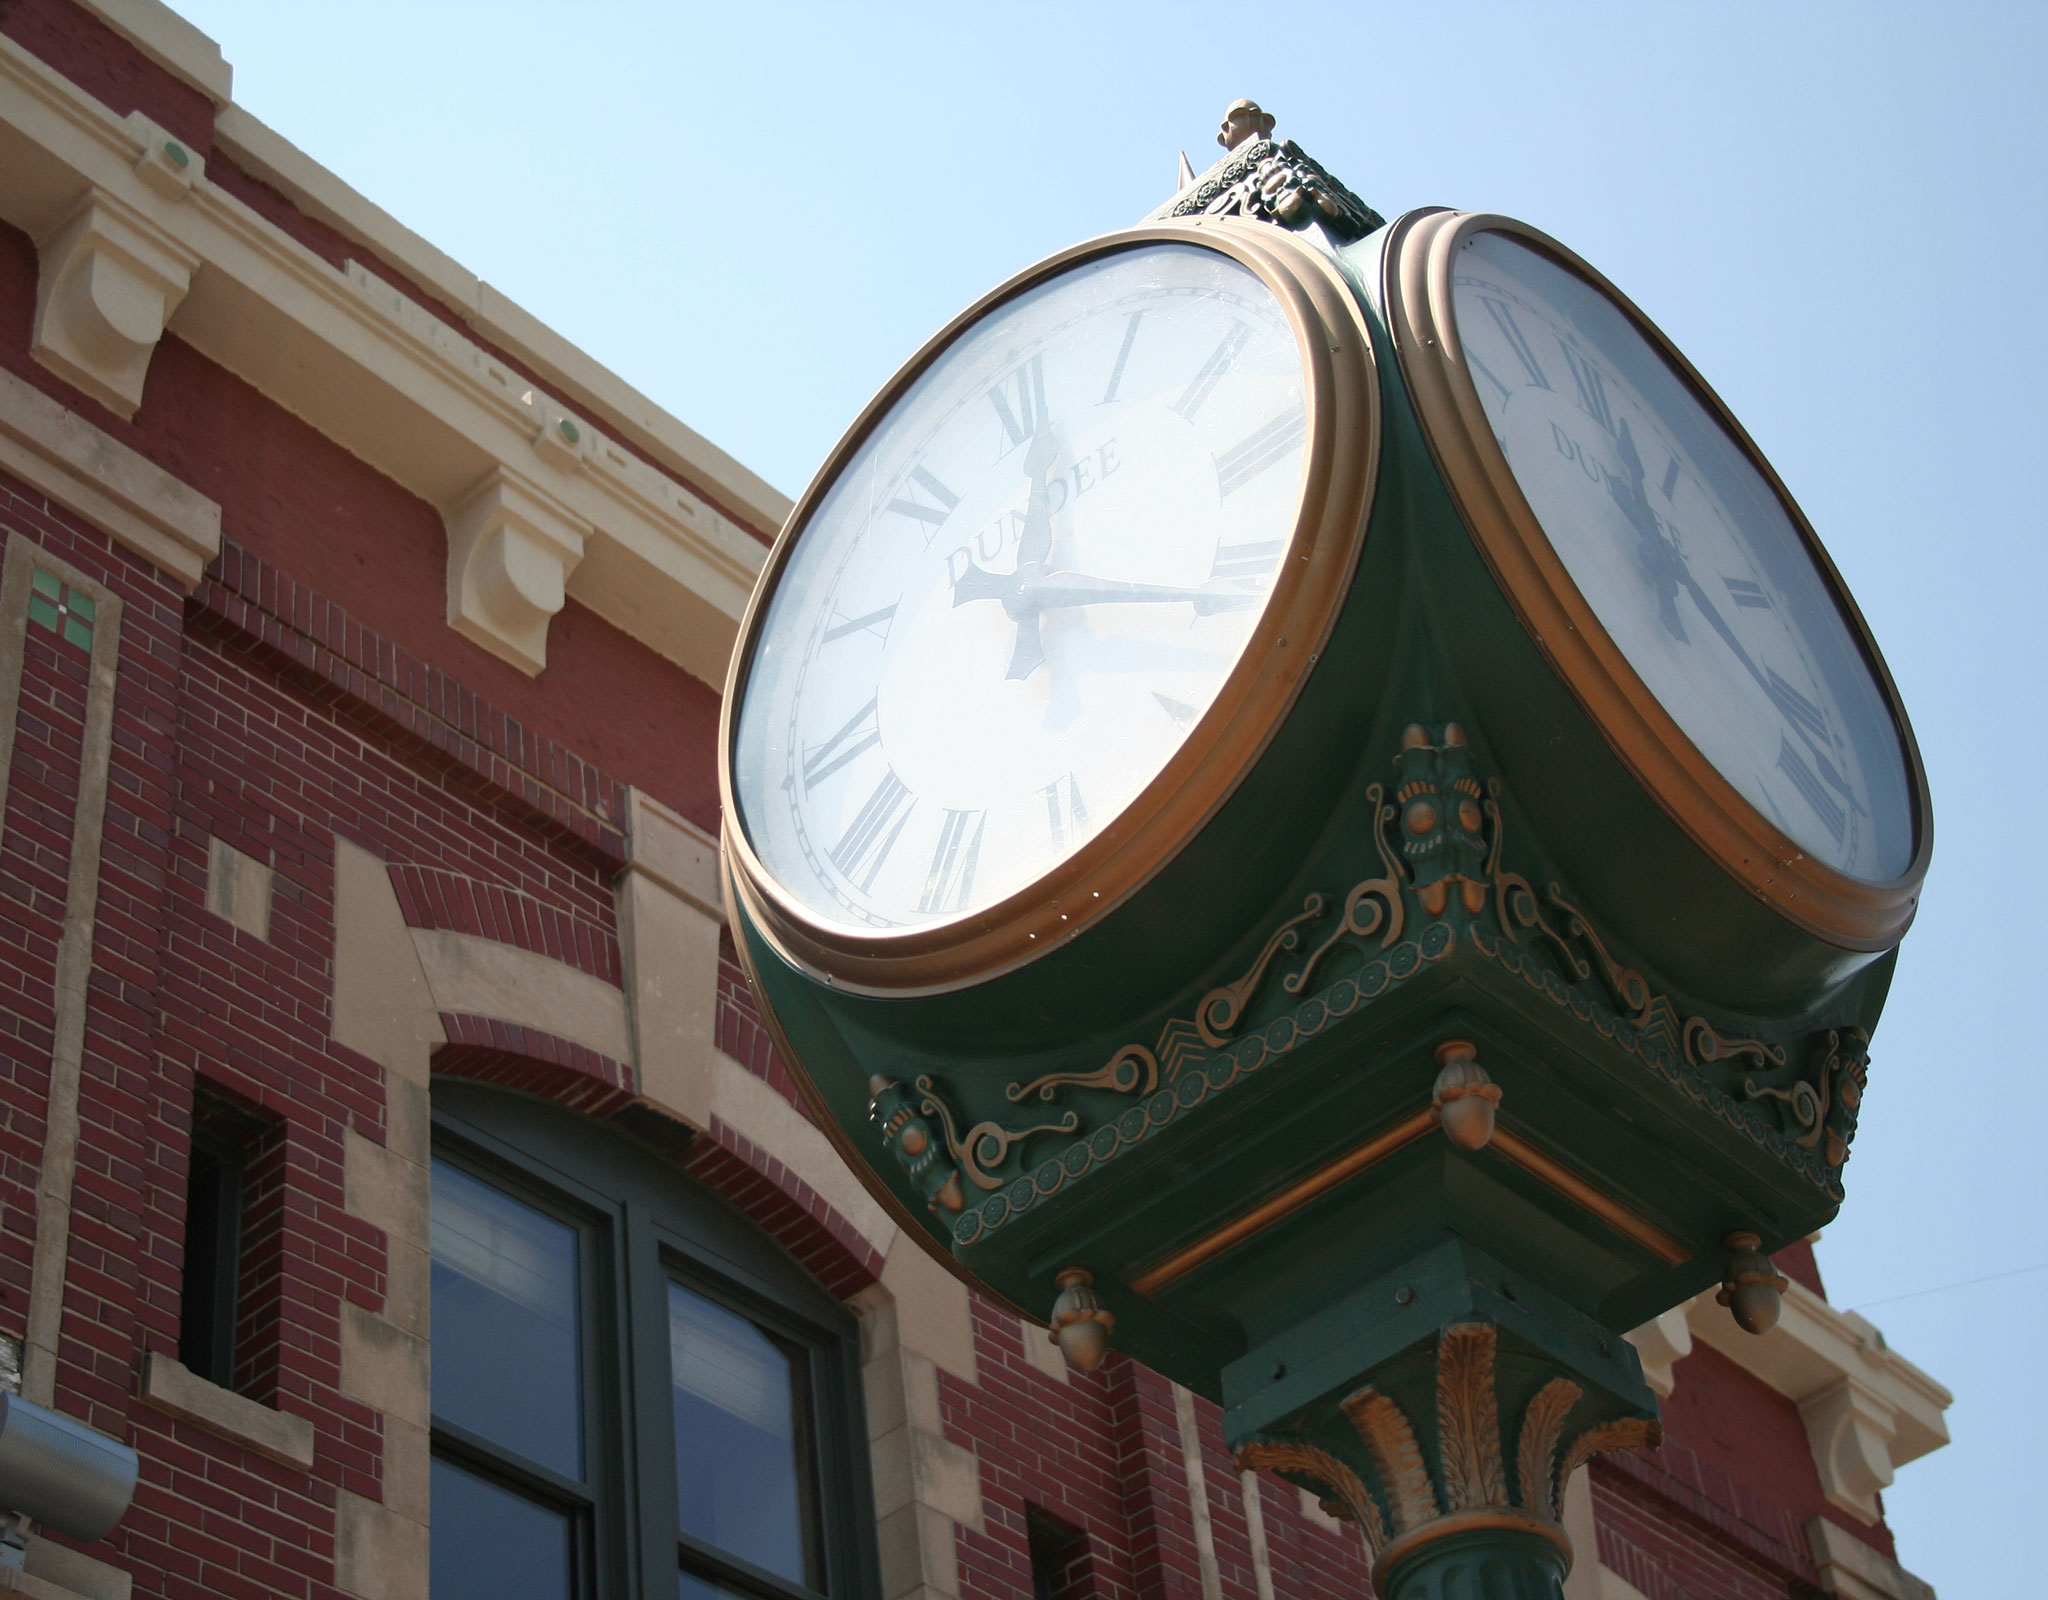 Dundee neighborhood clock outside